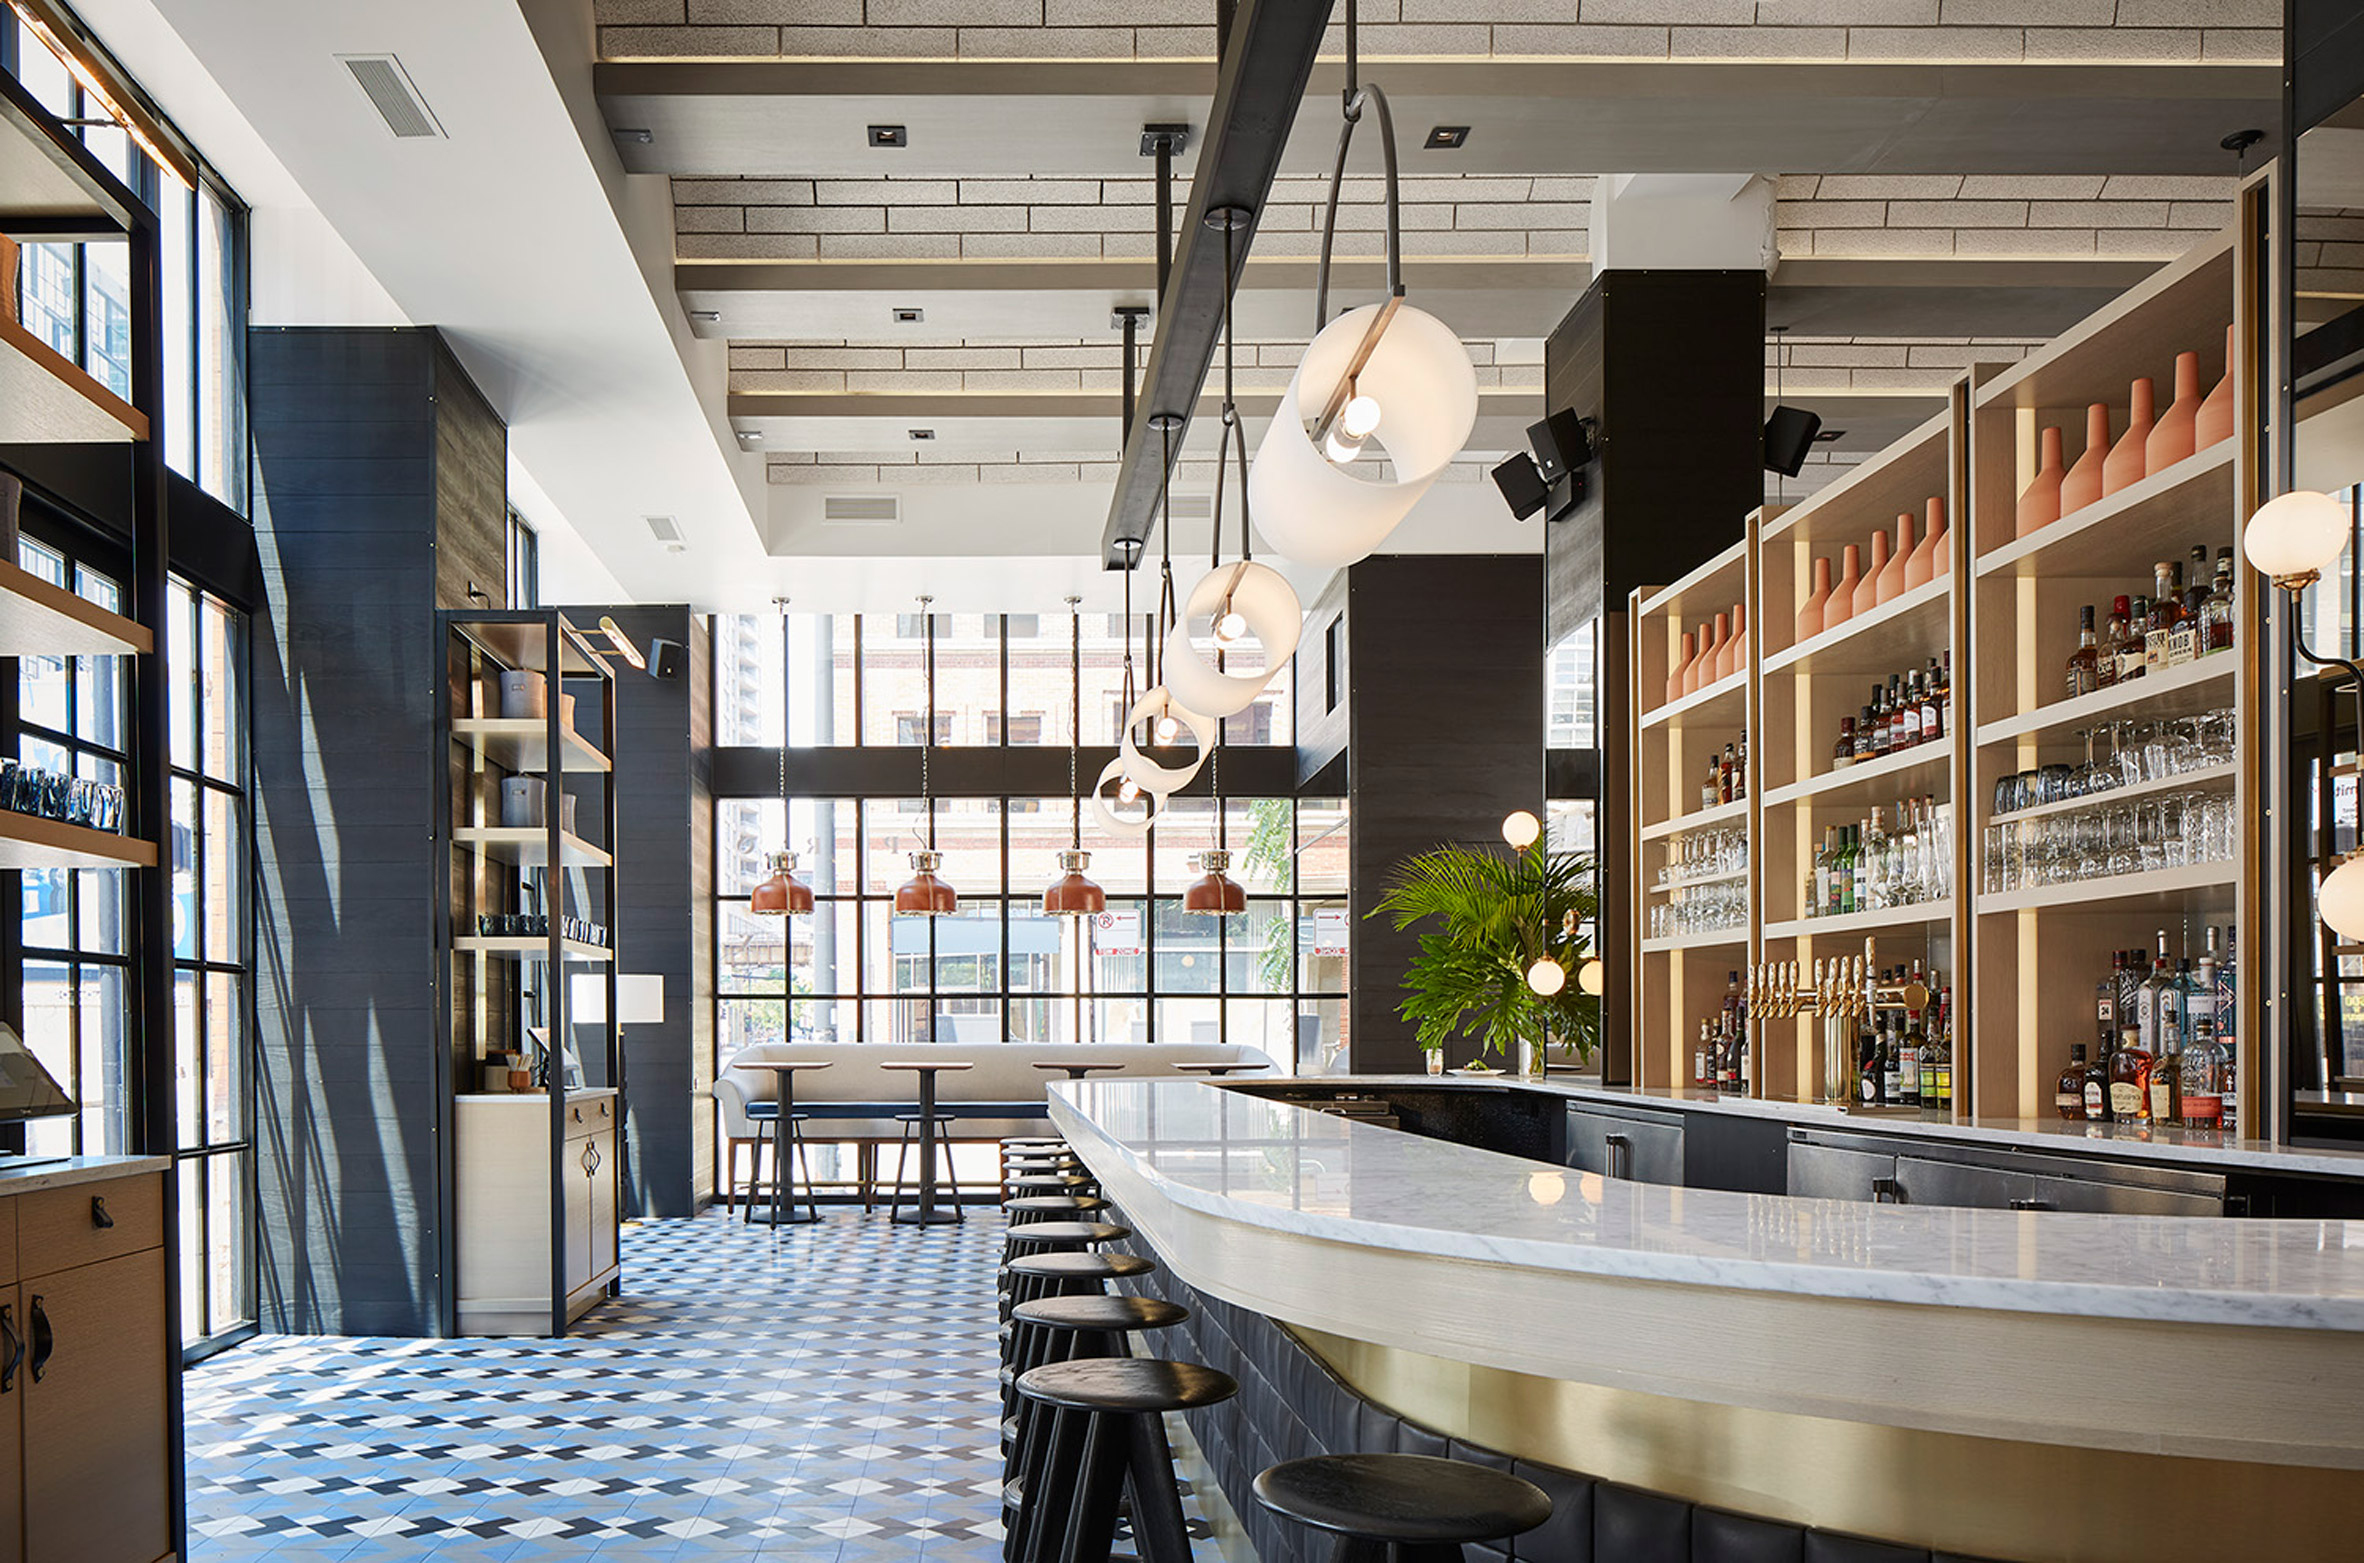 The Proxi restaurant occupies formerprinting housein Chicago